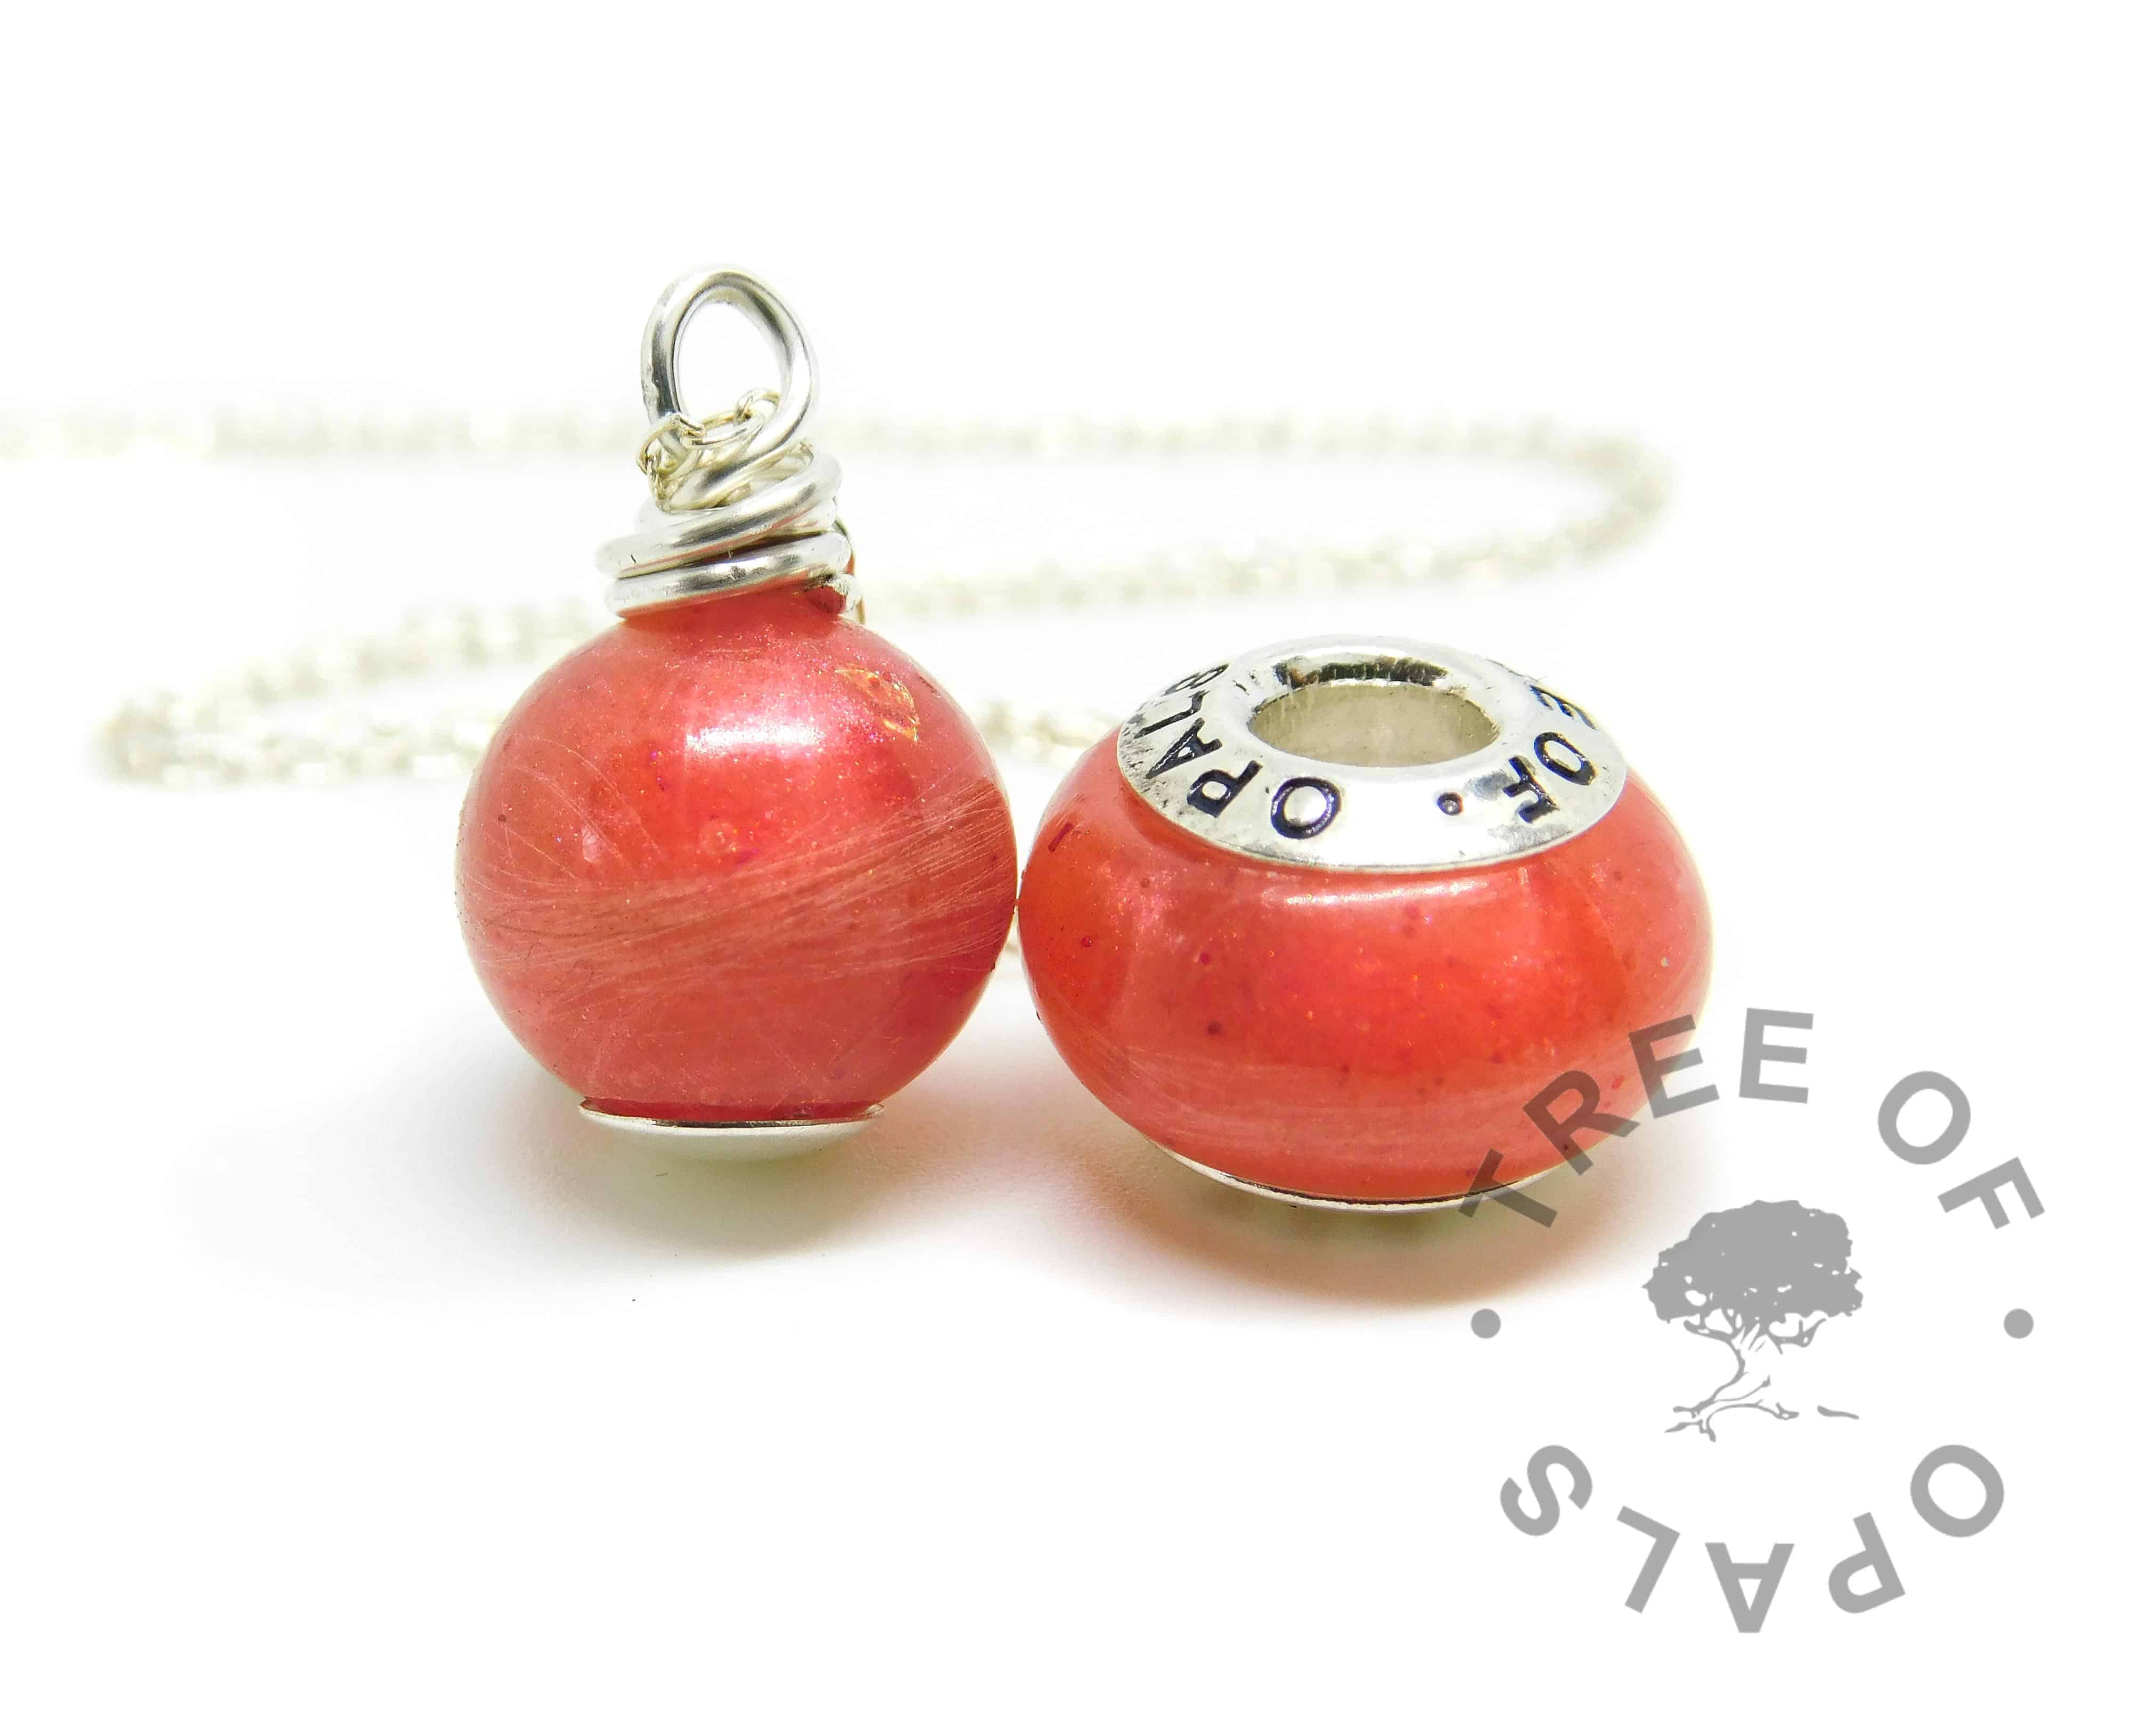 Lock of hair pearl and charm. Naturally white or very light blonde hair with dragon's blood red resin sparkle mix, no birthstones. Pearl set with solid sterling handmade headpin and shown with the standard necklace chain, charm set with Tree of Opals core. Watermarked copyright image by Tree of Opals